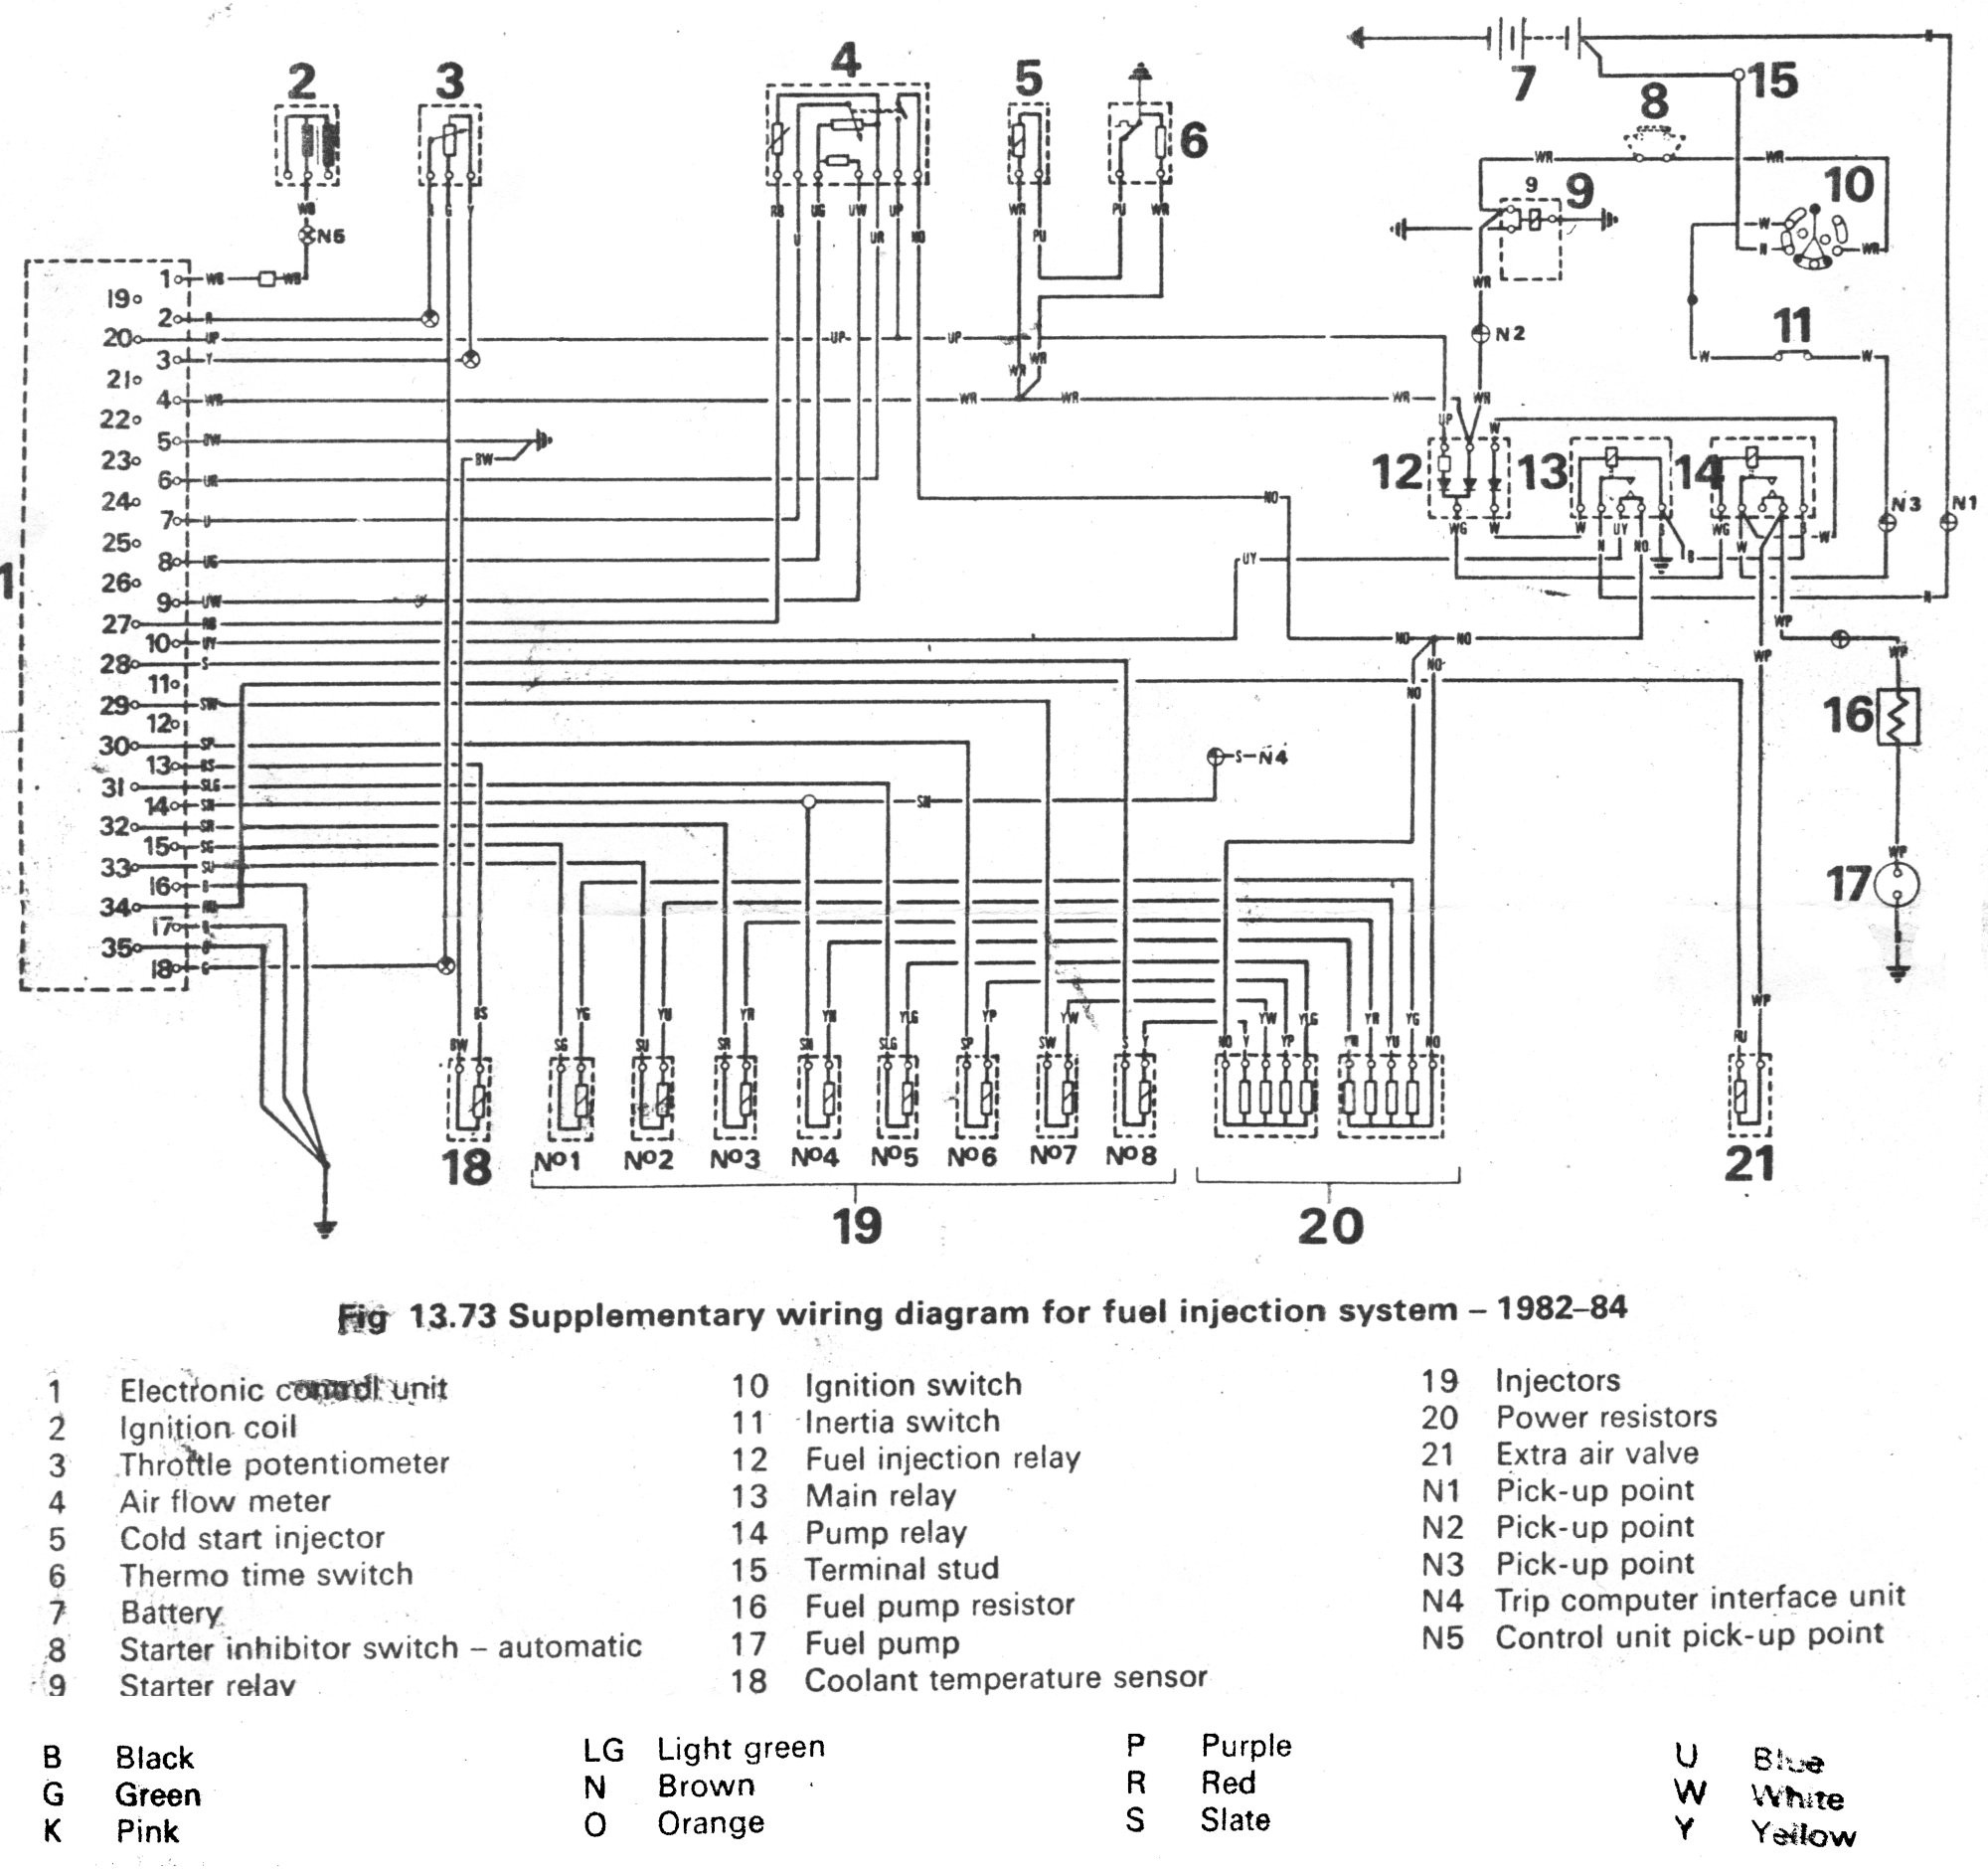 1986 Chevy Truck Fuse Box Diagram 1987 ford Ranger 20 L4 Gas Wiring Diagram  Wiring Info •